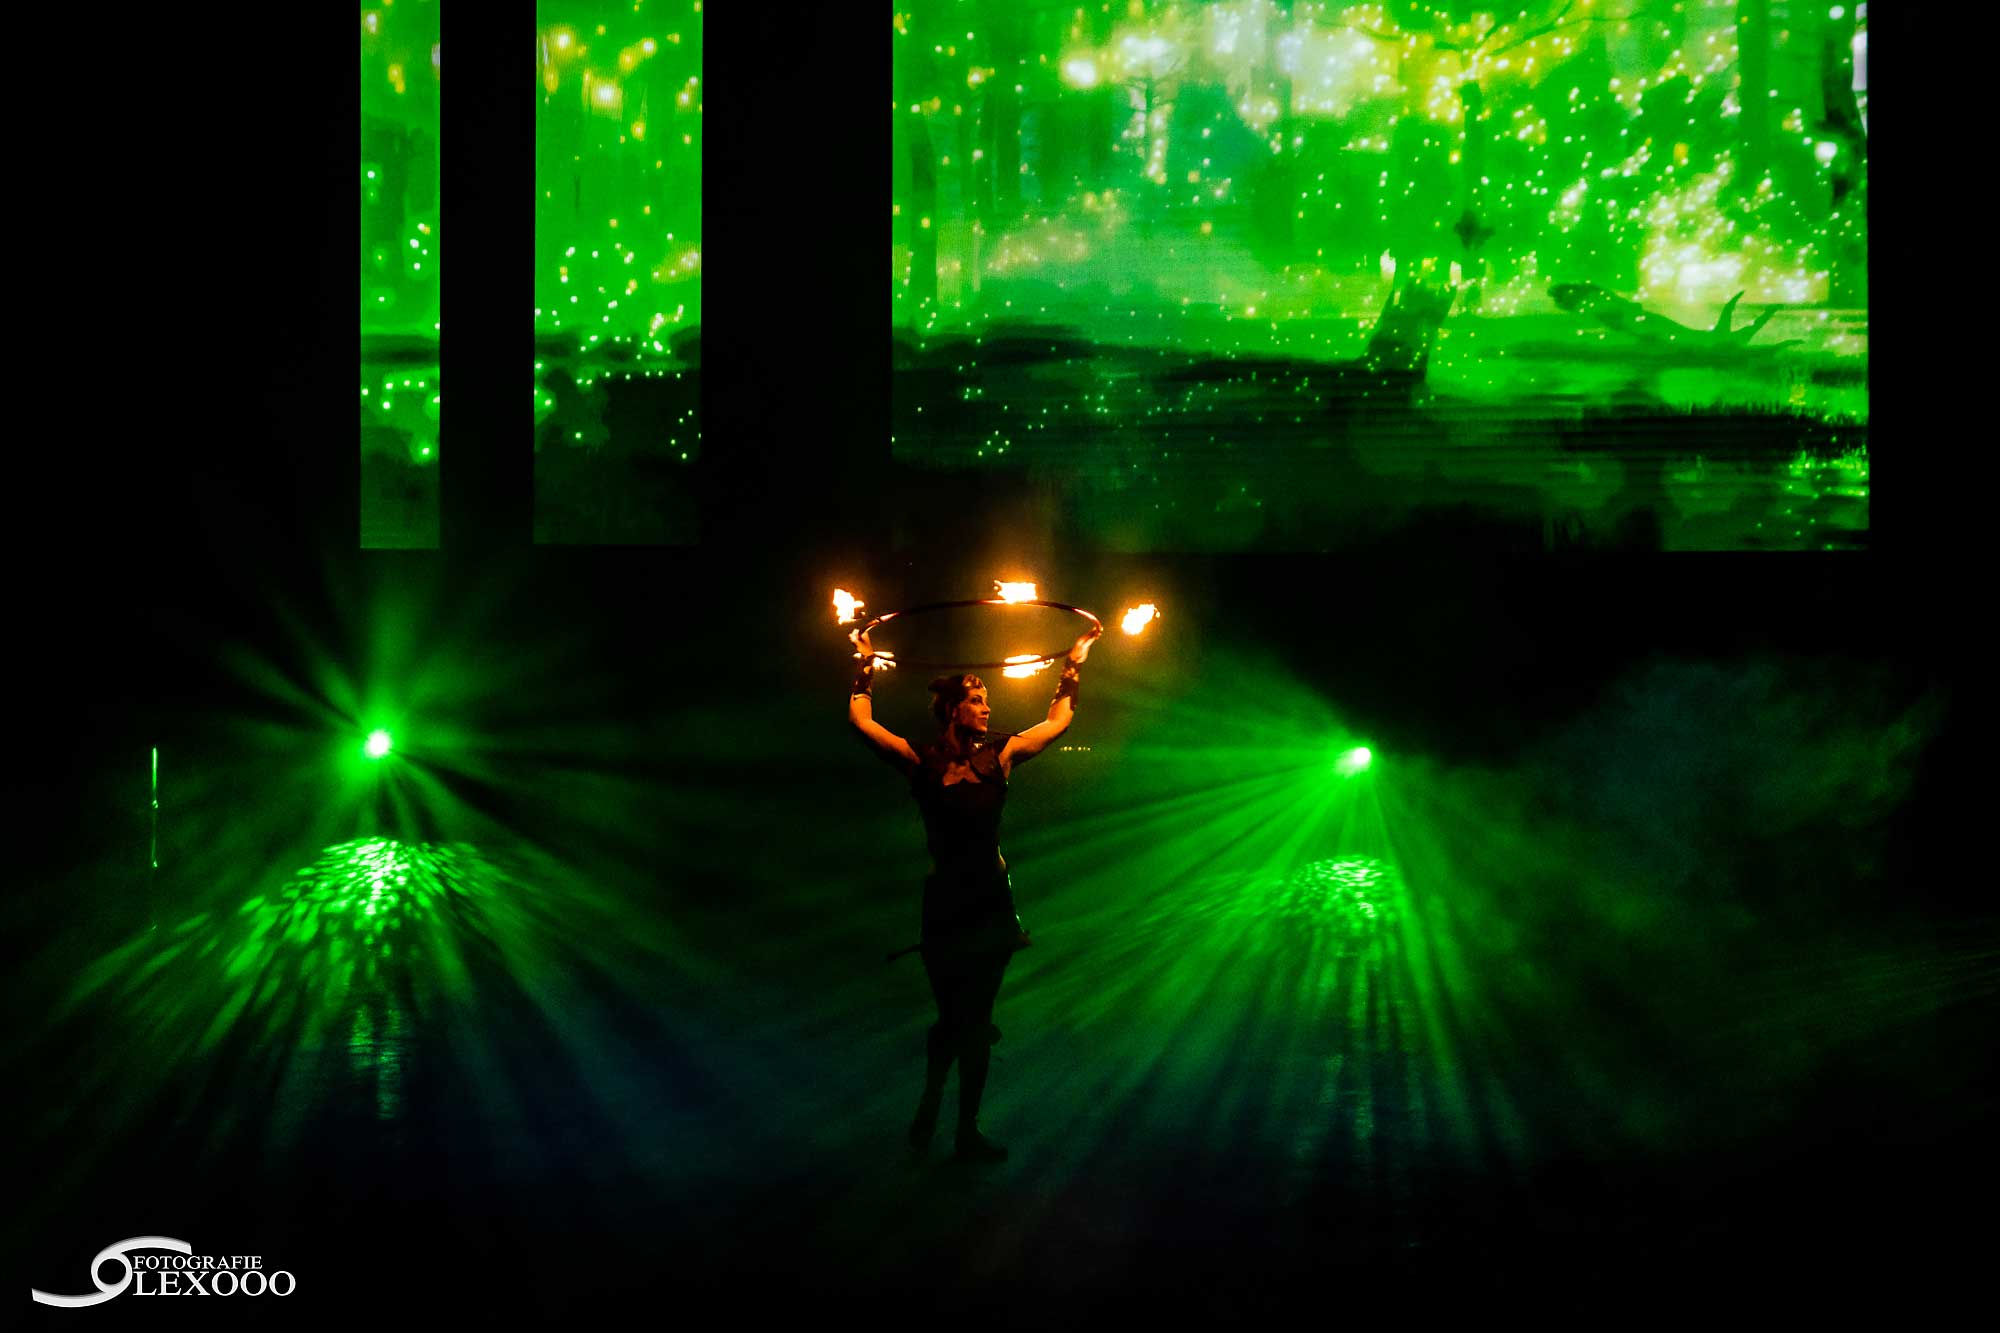 Fireshow-LightsinMotion-The-Legend-6